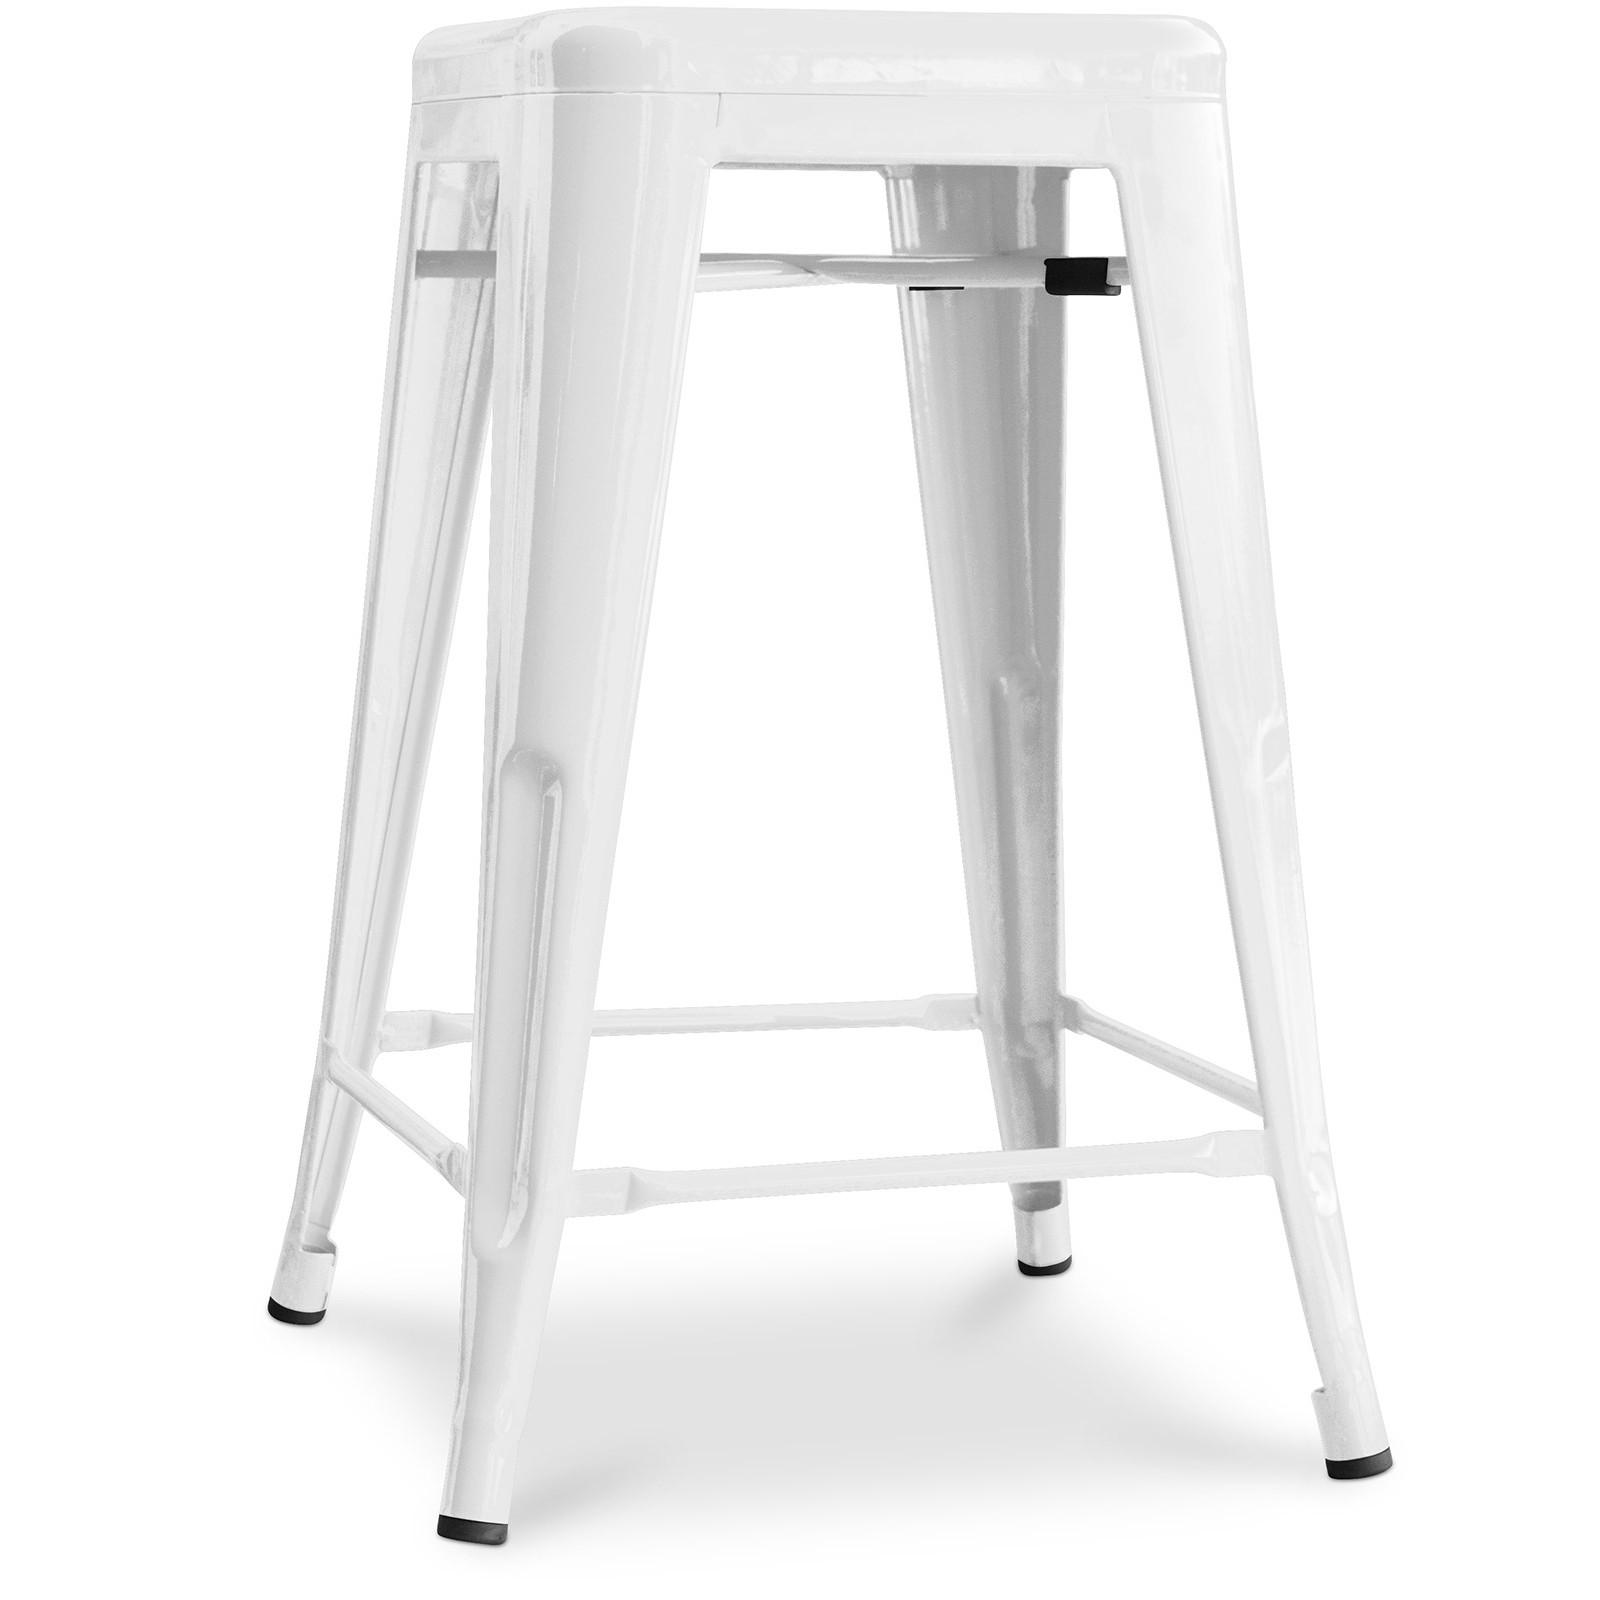 tabouret bar acier blanc brillant tolix 60 cm inspir xavier pauchard lot de 4. Black Bedroom Furniture Sets. Home Design Ideas